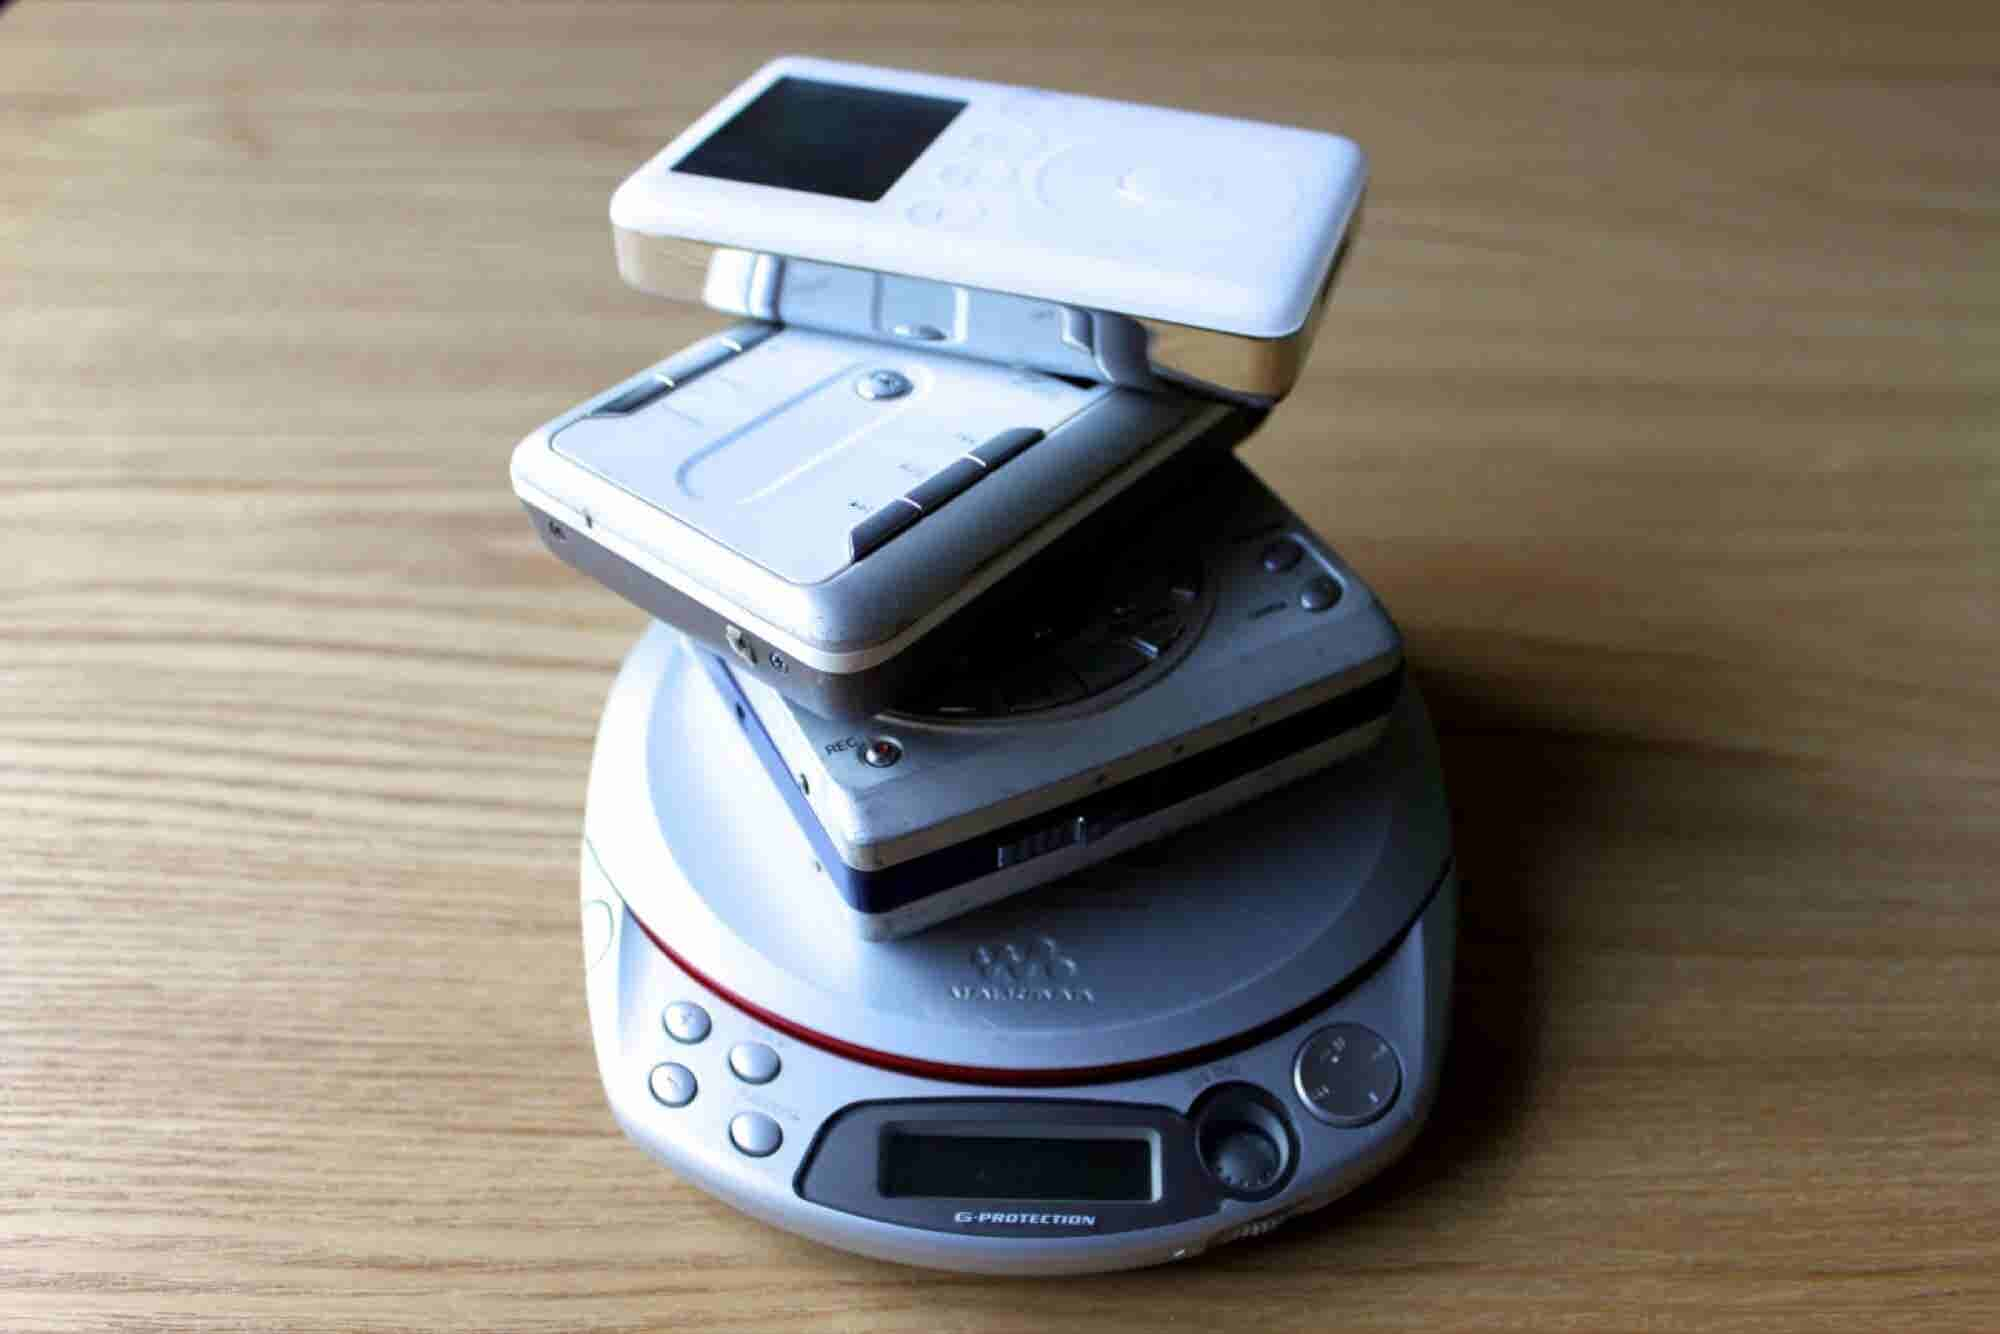 6 Pieces of Old Tech That Sold for Big Bucks at Auction